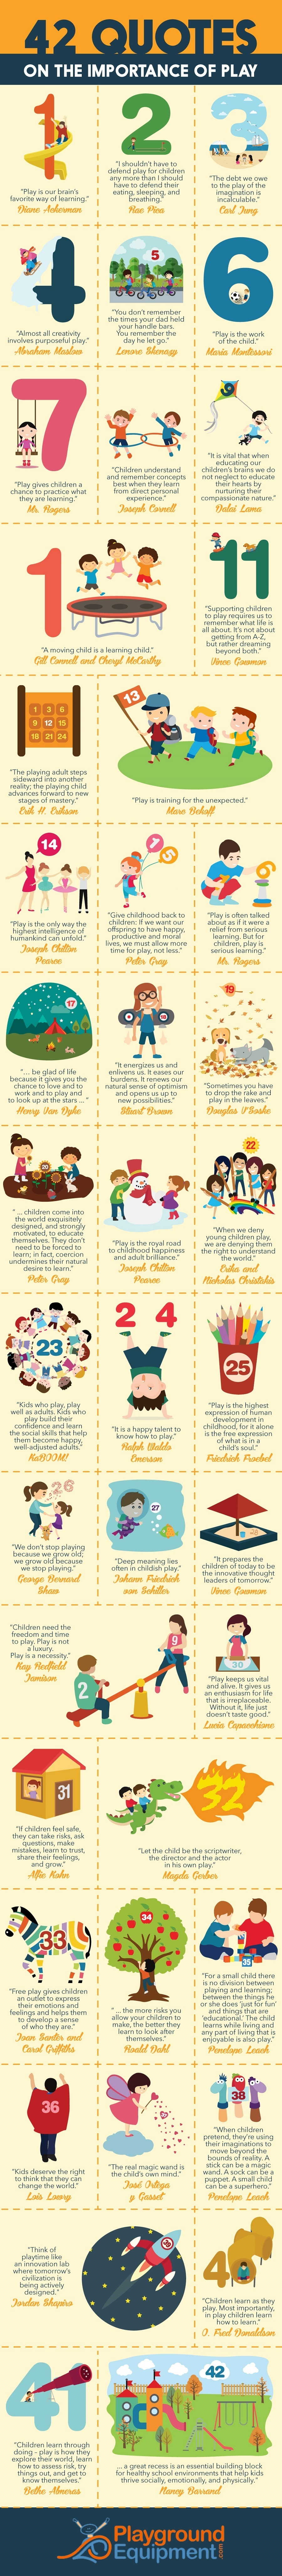 42 Quotes on the Importance of Play Infographic